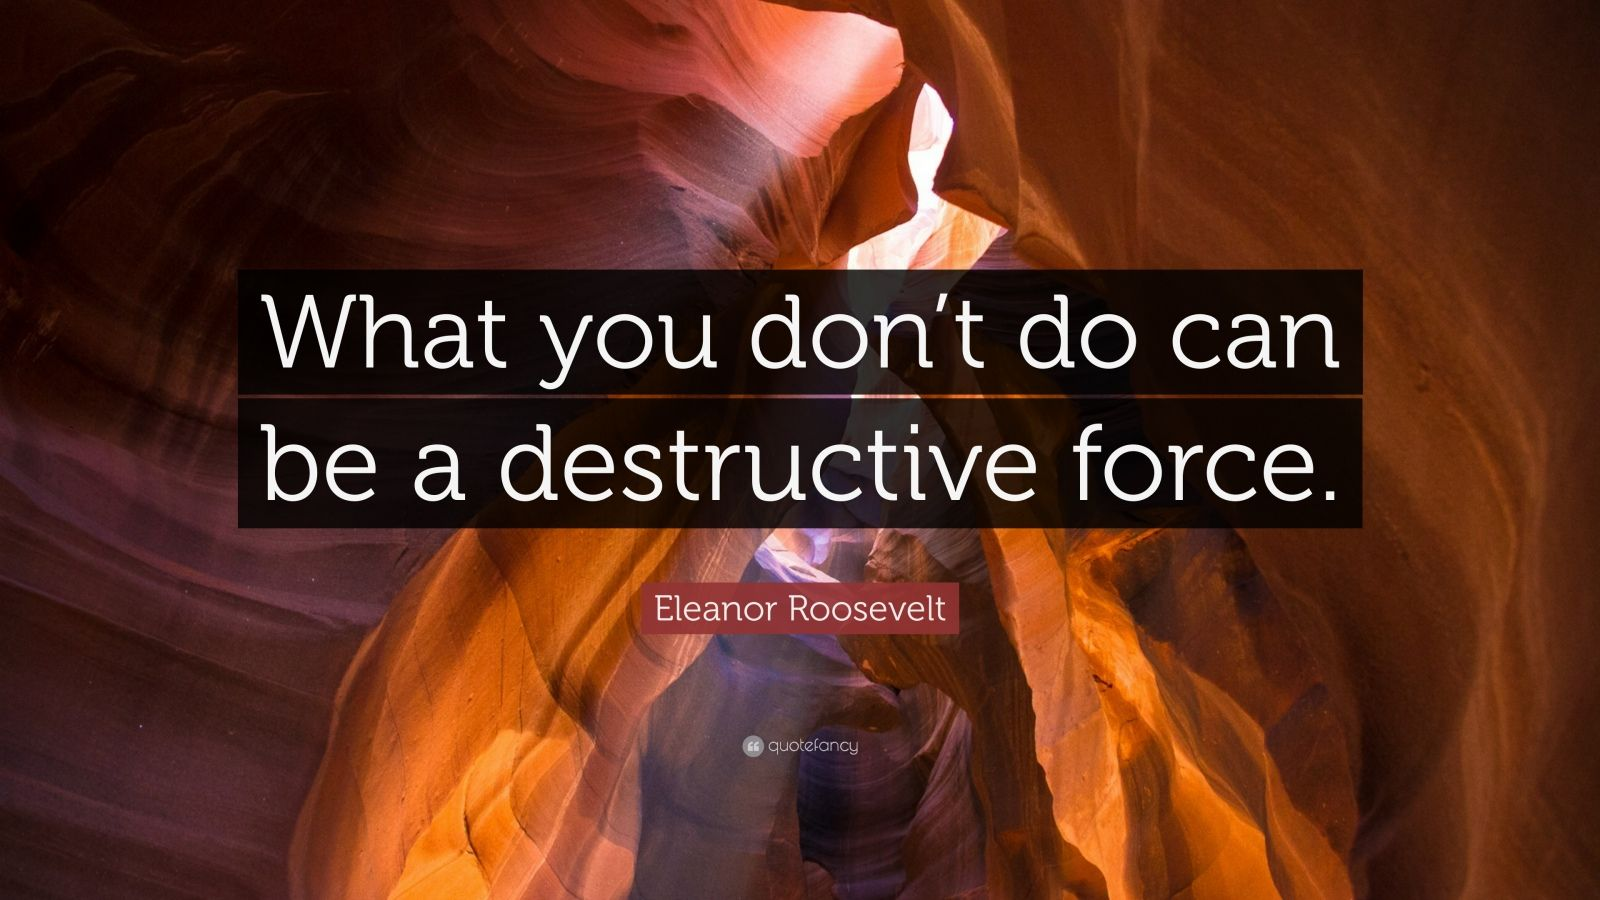 """Eleanor Roosevelt Quote: """"What you don't do can be a destructive force."""""""